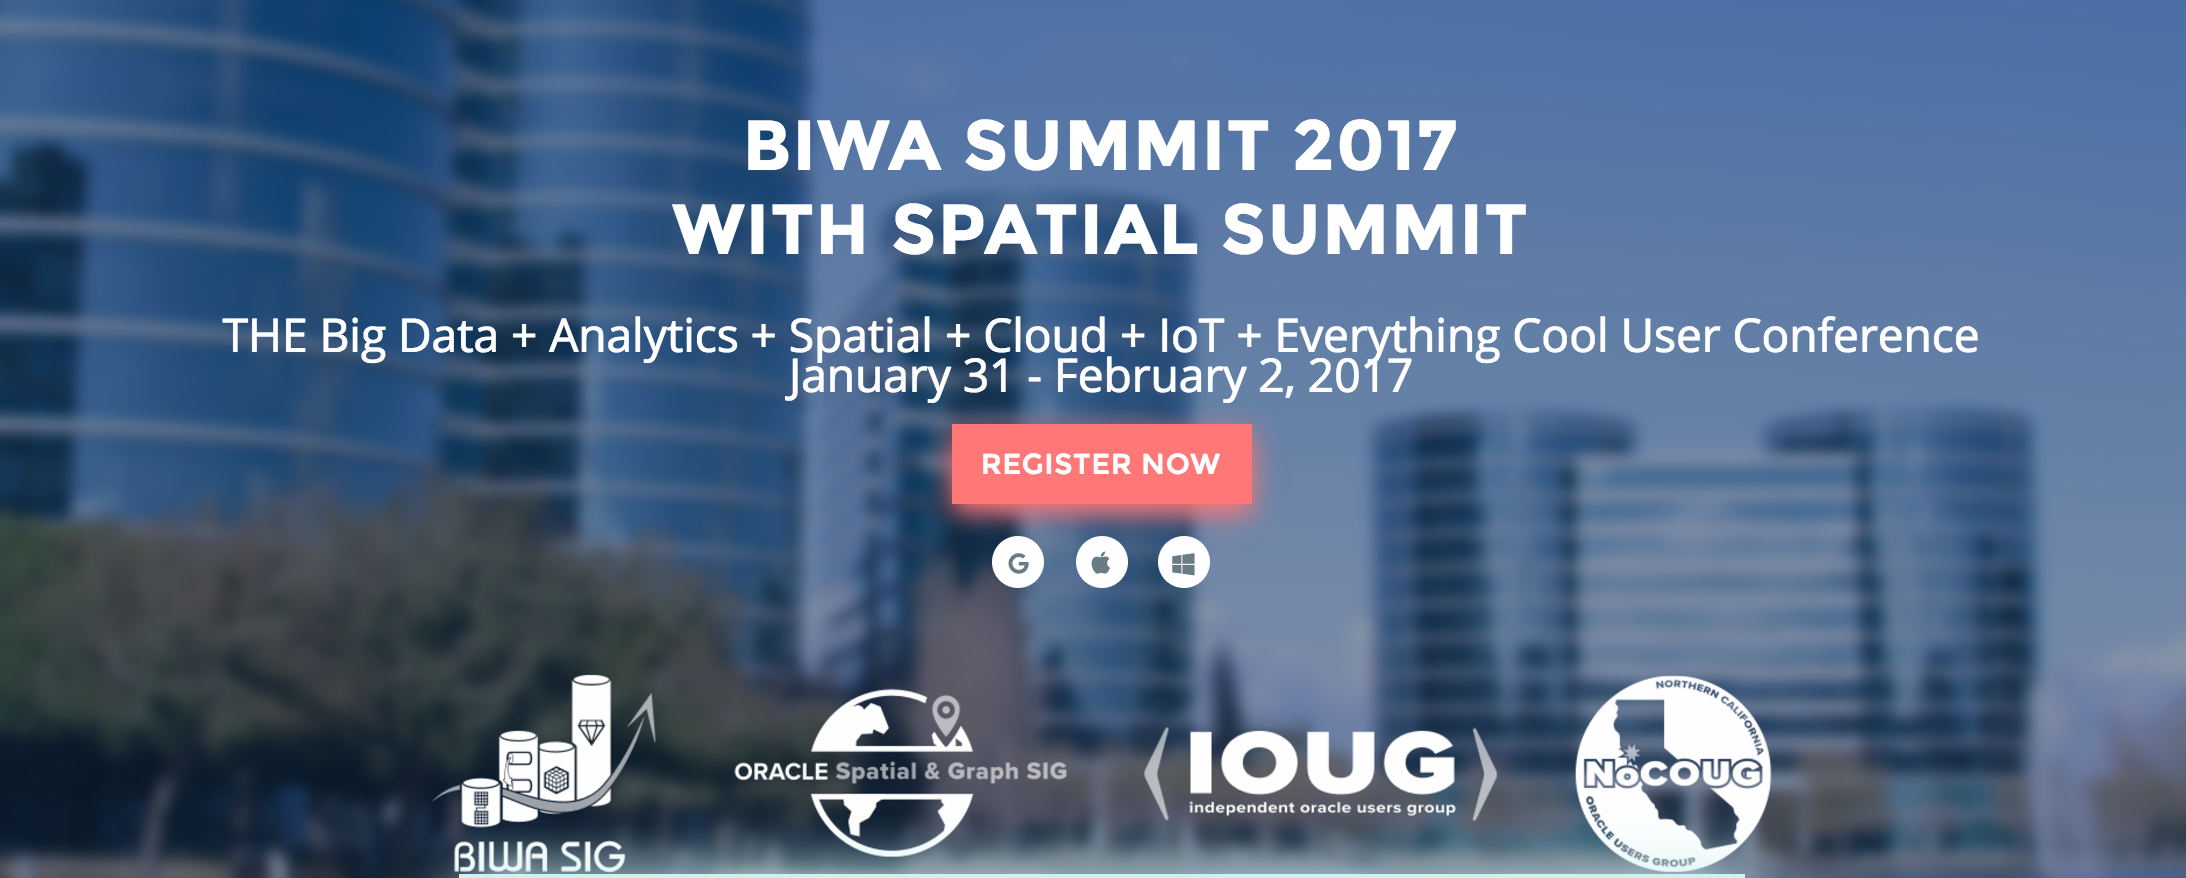 Join Rittman Mead at the 2017 BIWA Summit!